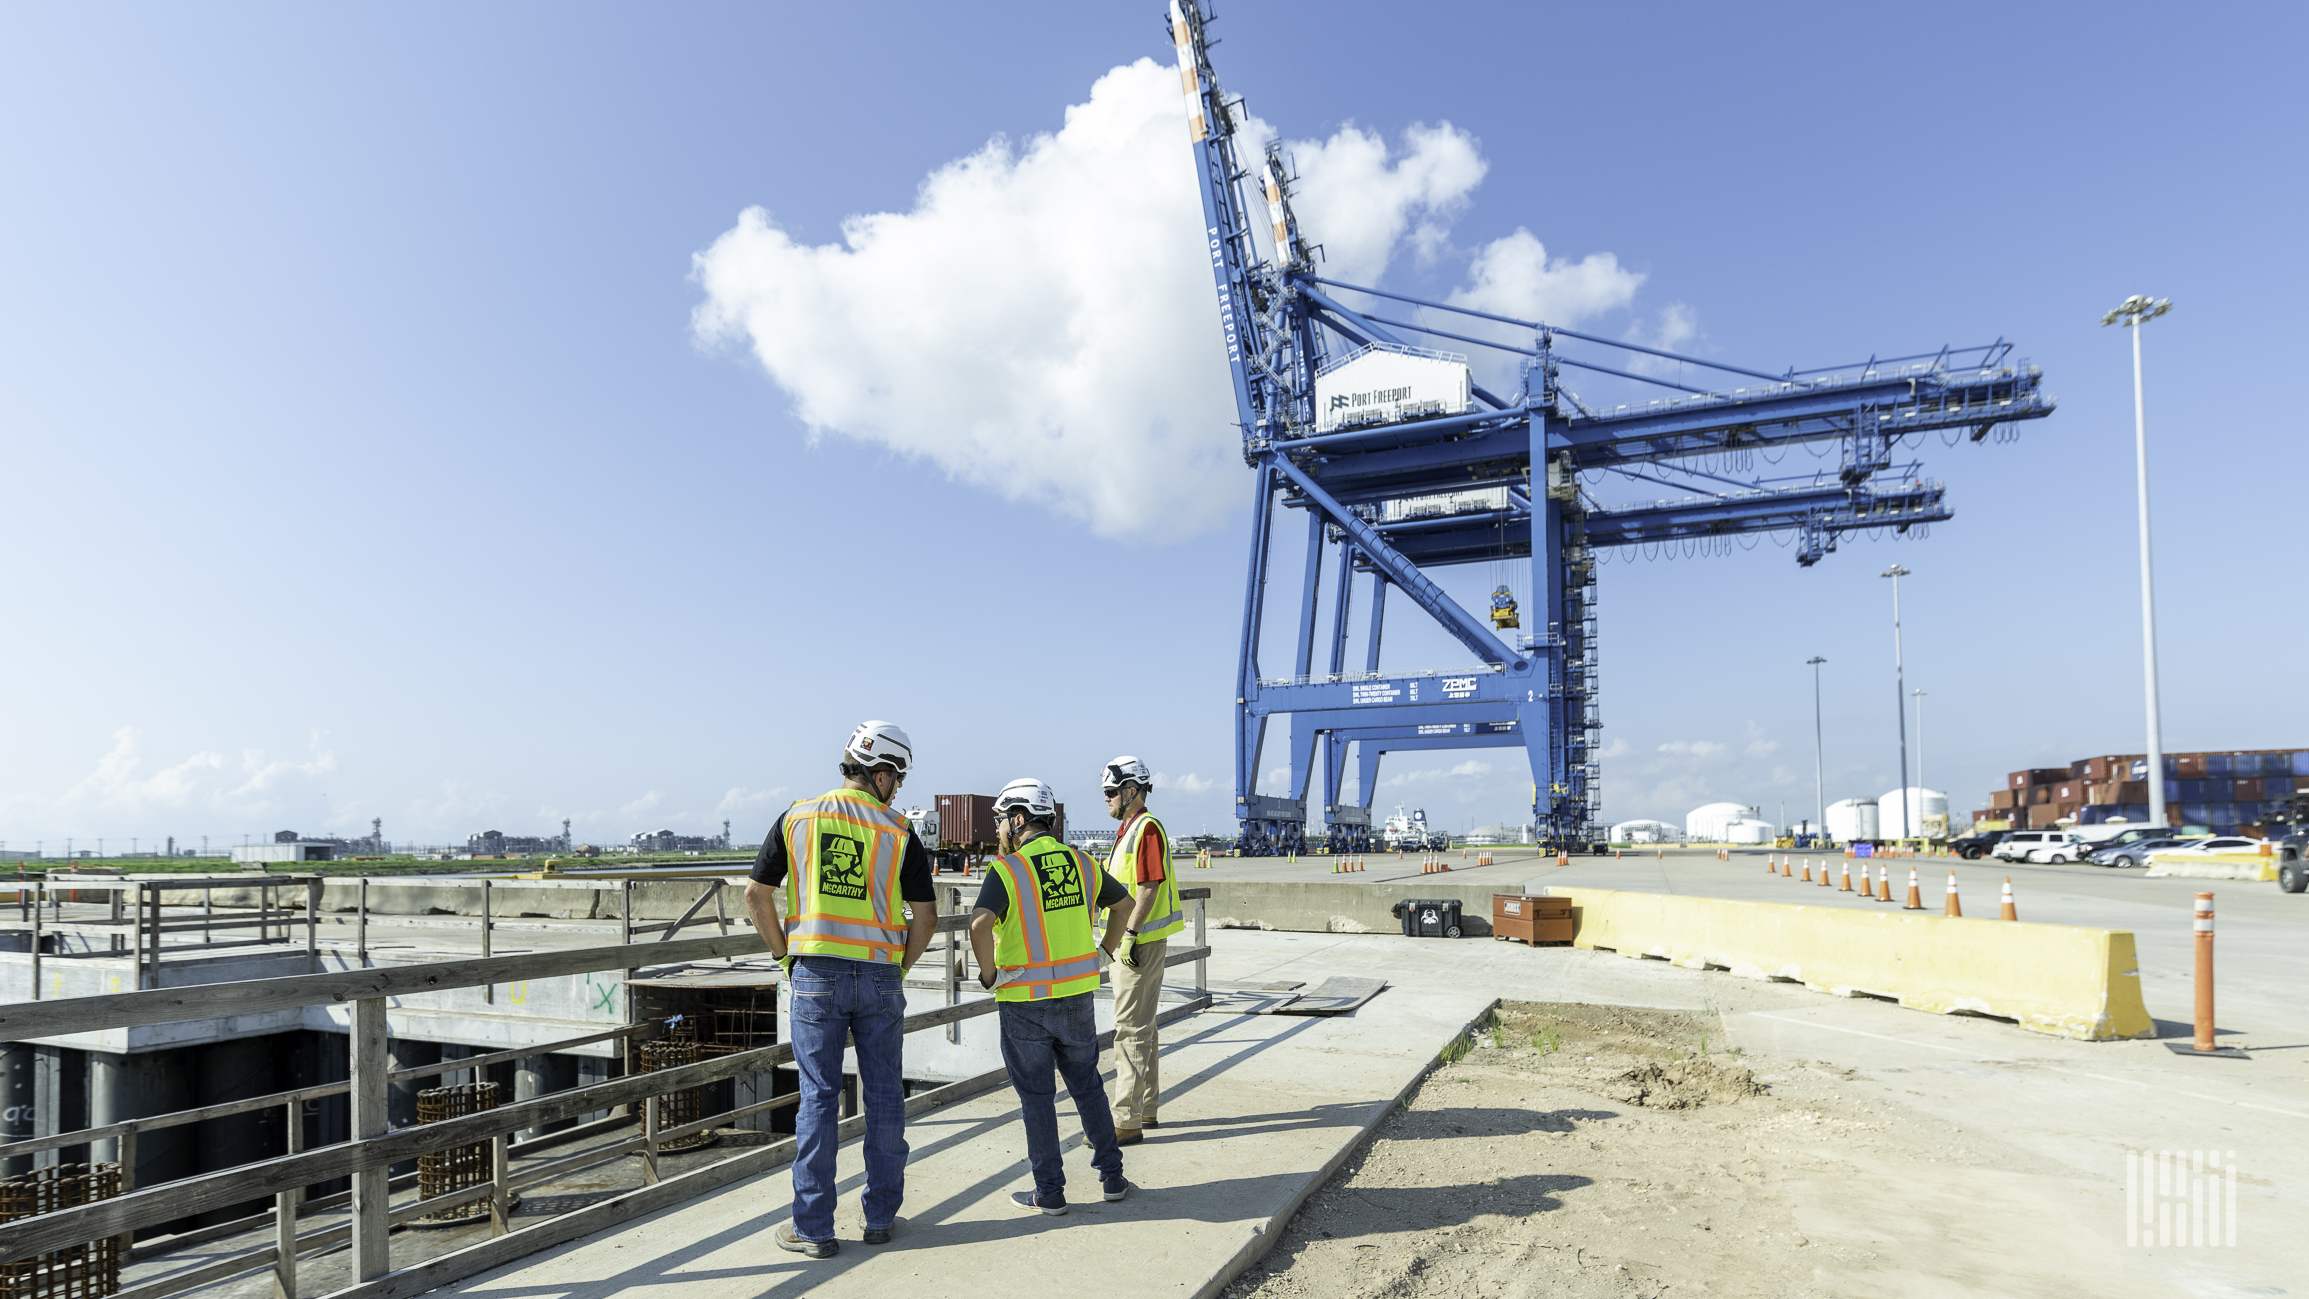 Gulf ports expanding their way to bigger profits